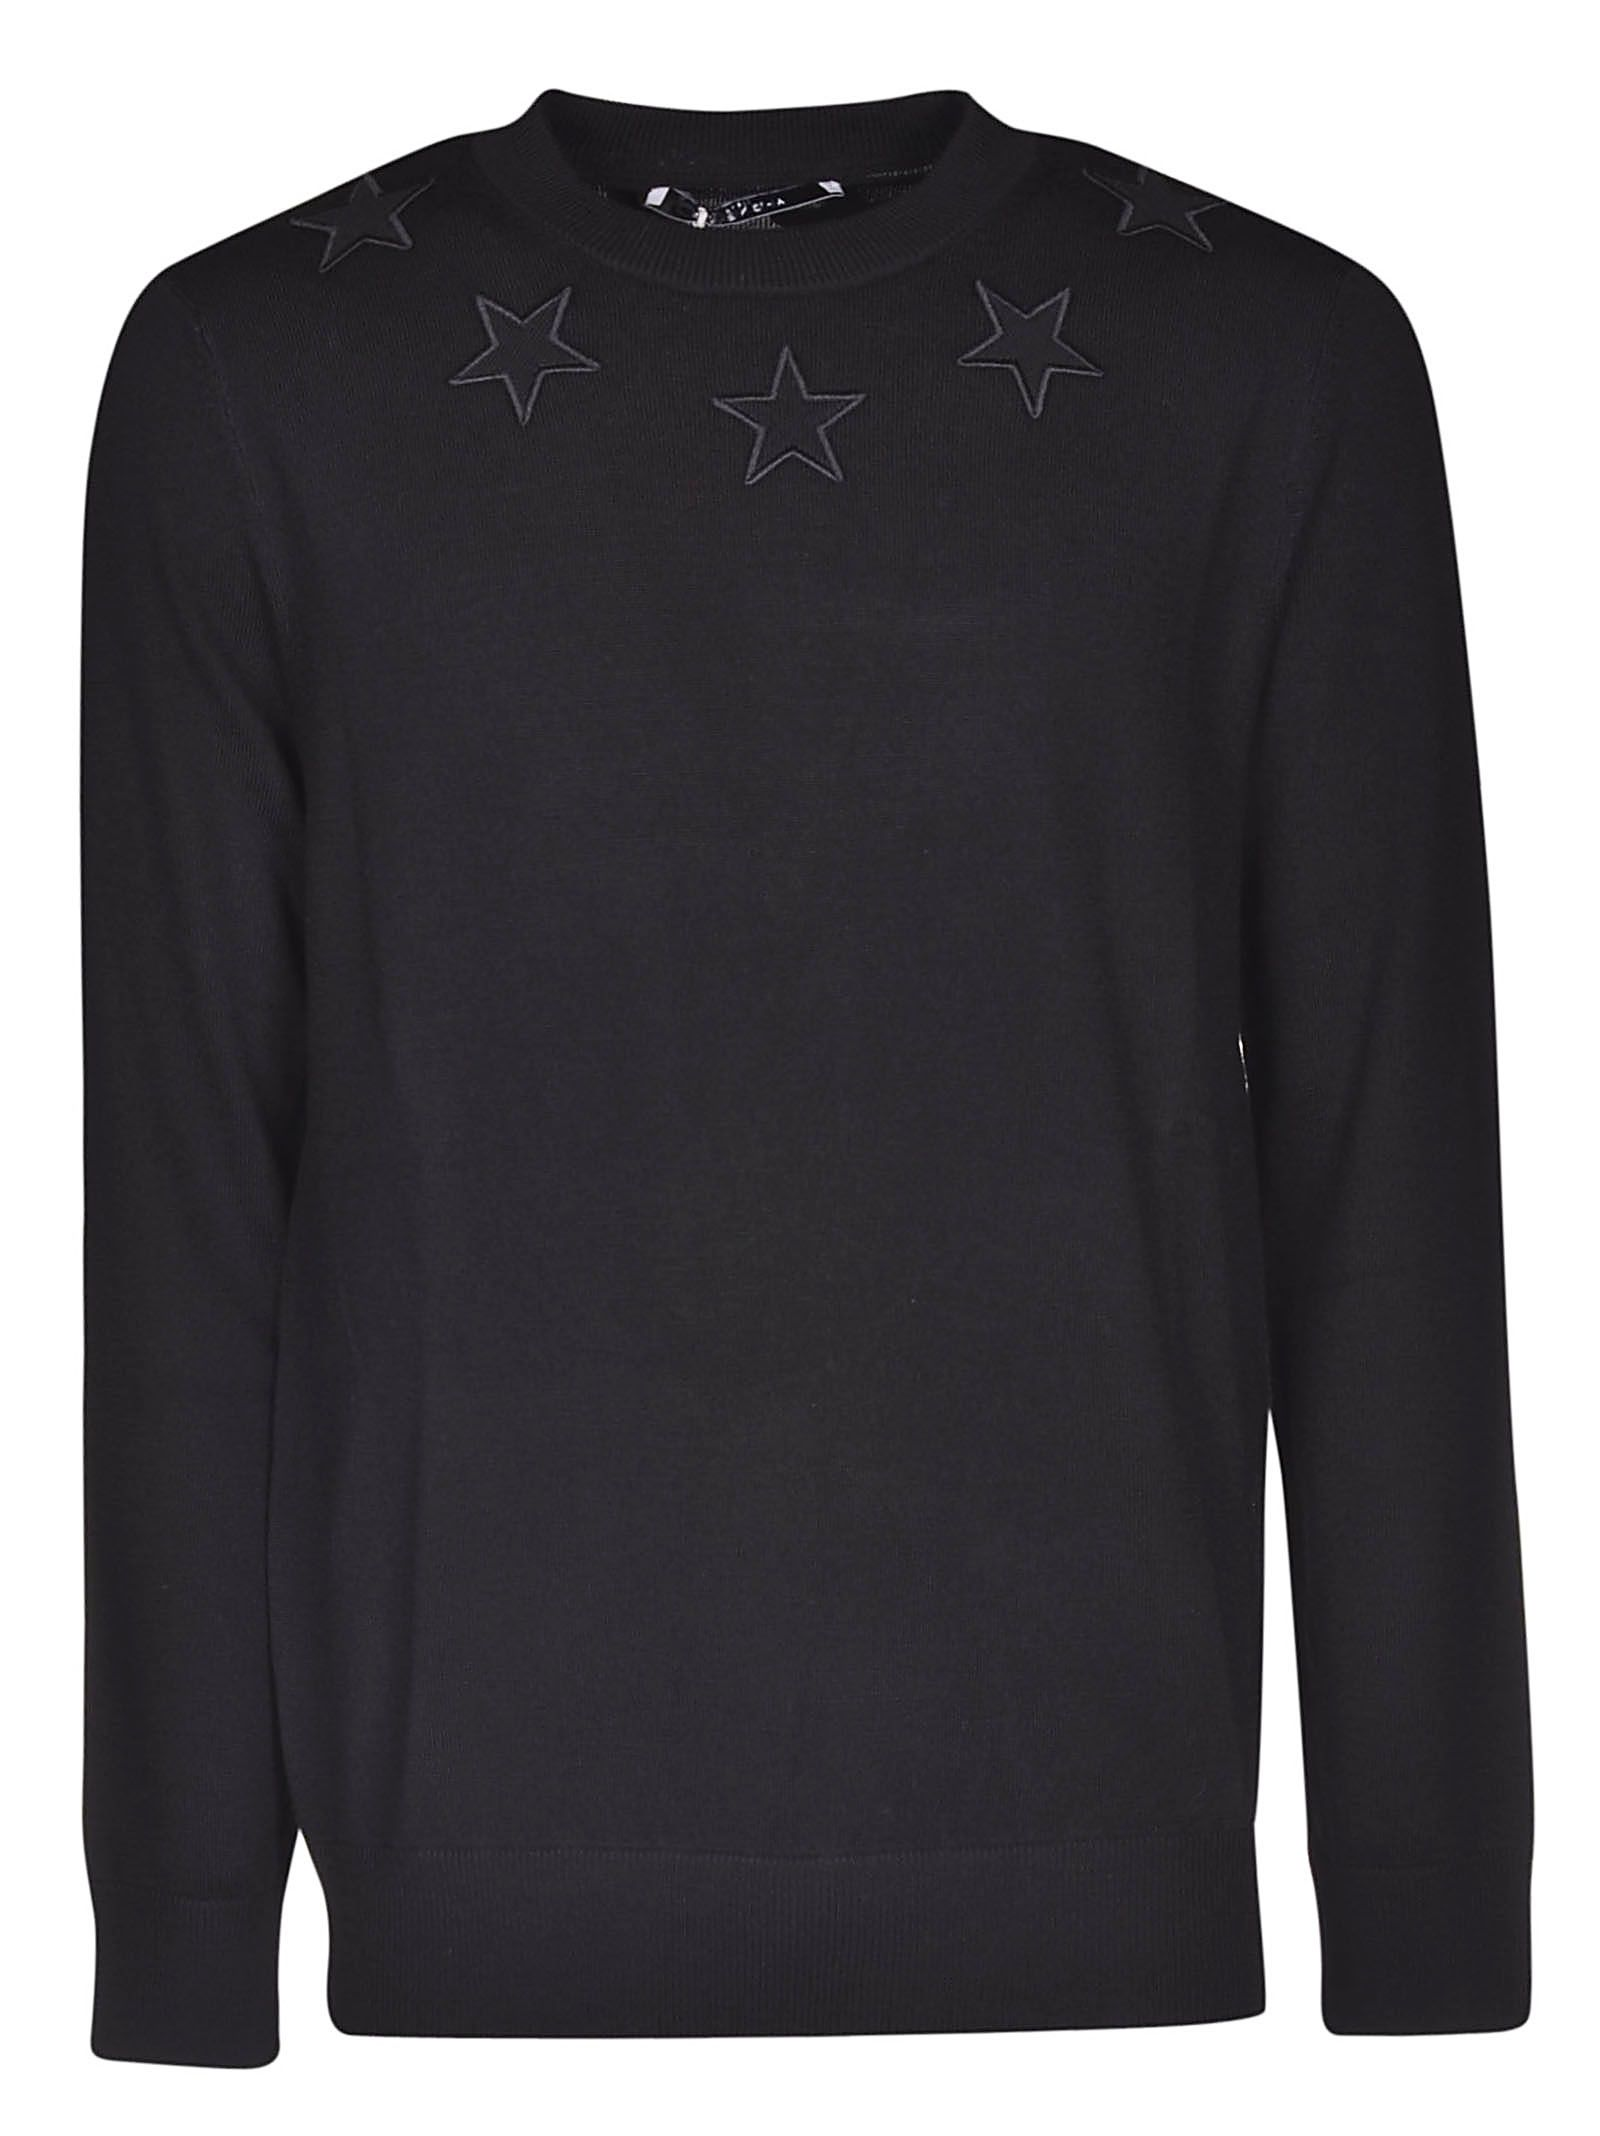 304c7067696f6 Givenchy Givenchy Star Applique Jumper - Black - 10851888